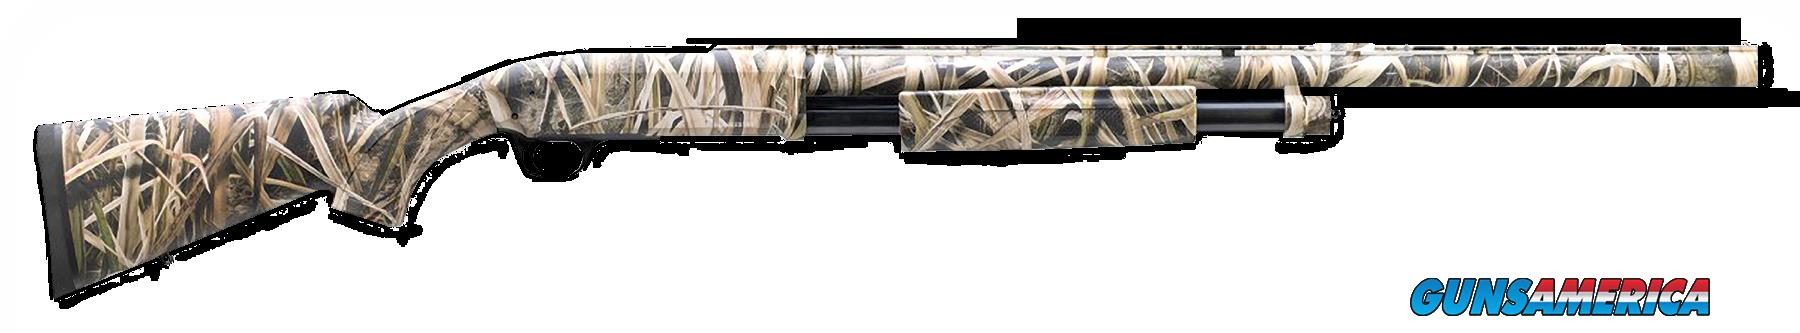 "Browning 012271204 BPS 12 Gauge 28"" 3.5"" MOSG Synthetic Stk MOSG Rcvr  Guns > Shotguns > Browning Shotguns > Pump Action"